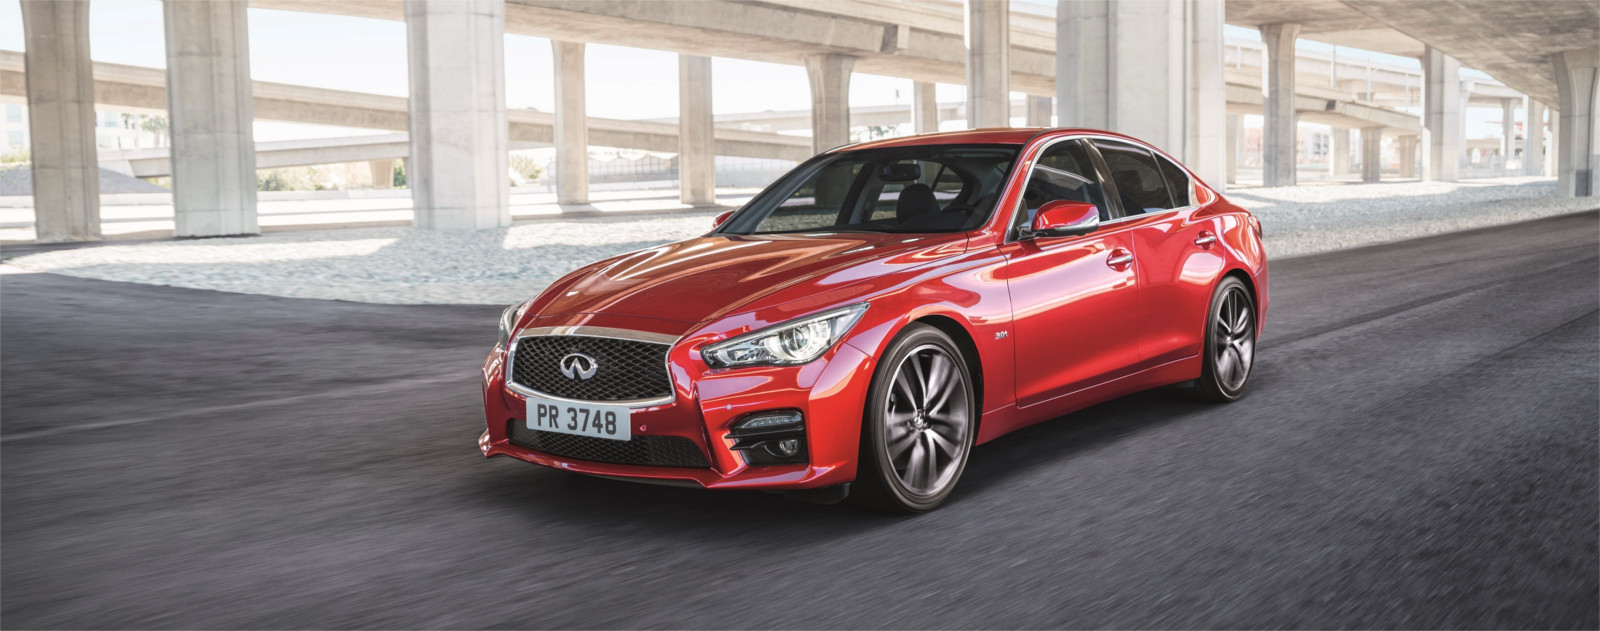 Lateral q50